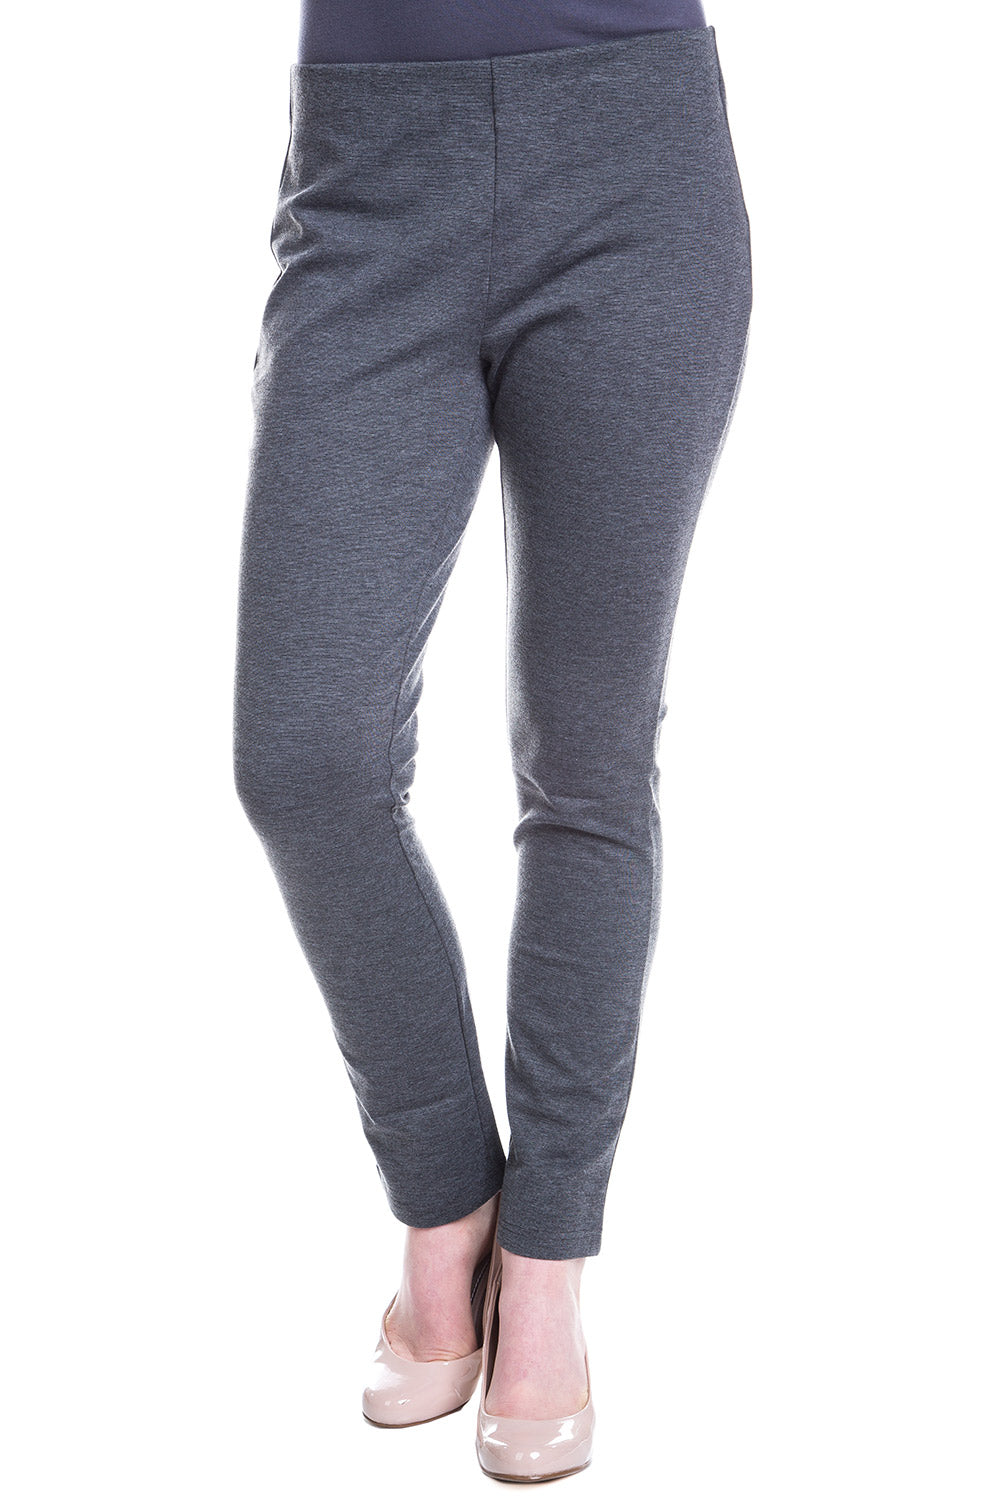 Type 2 In The Mix Pants In Heathered Gray